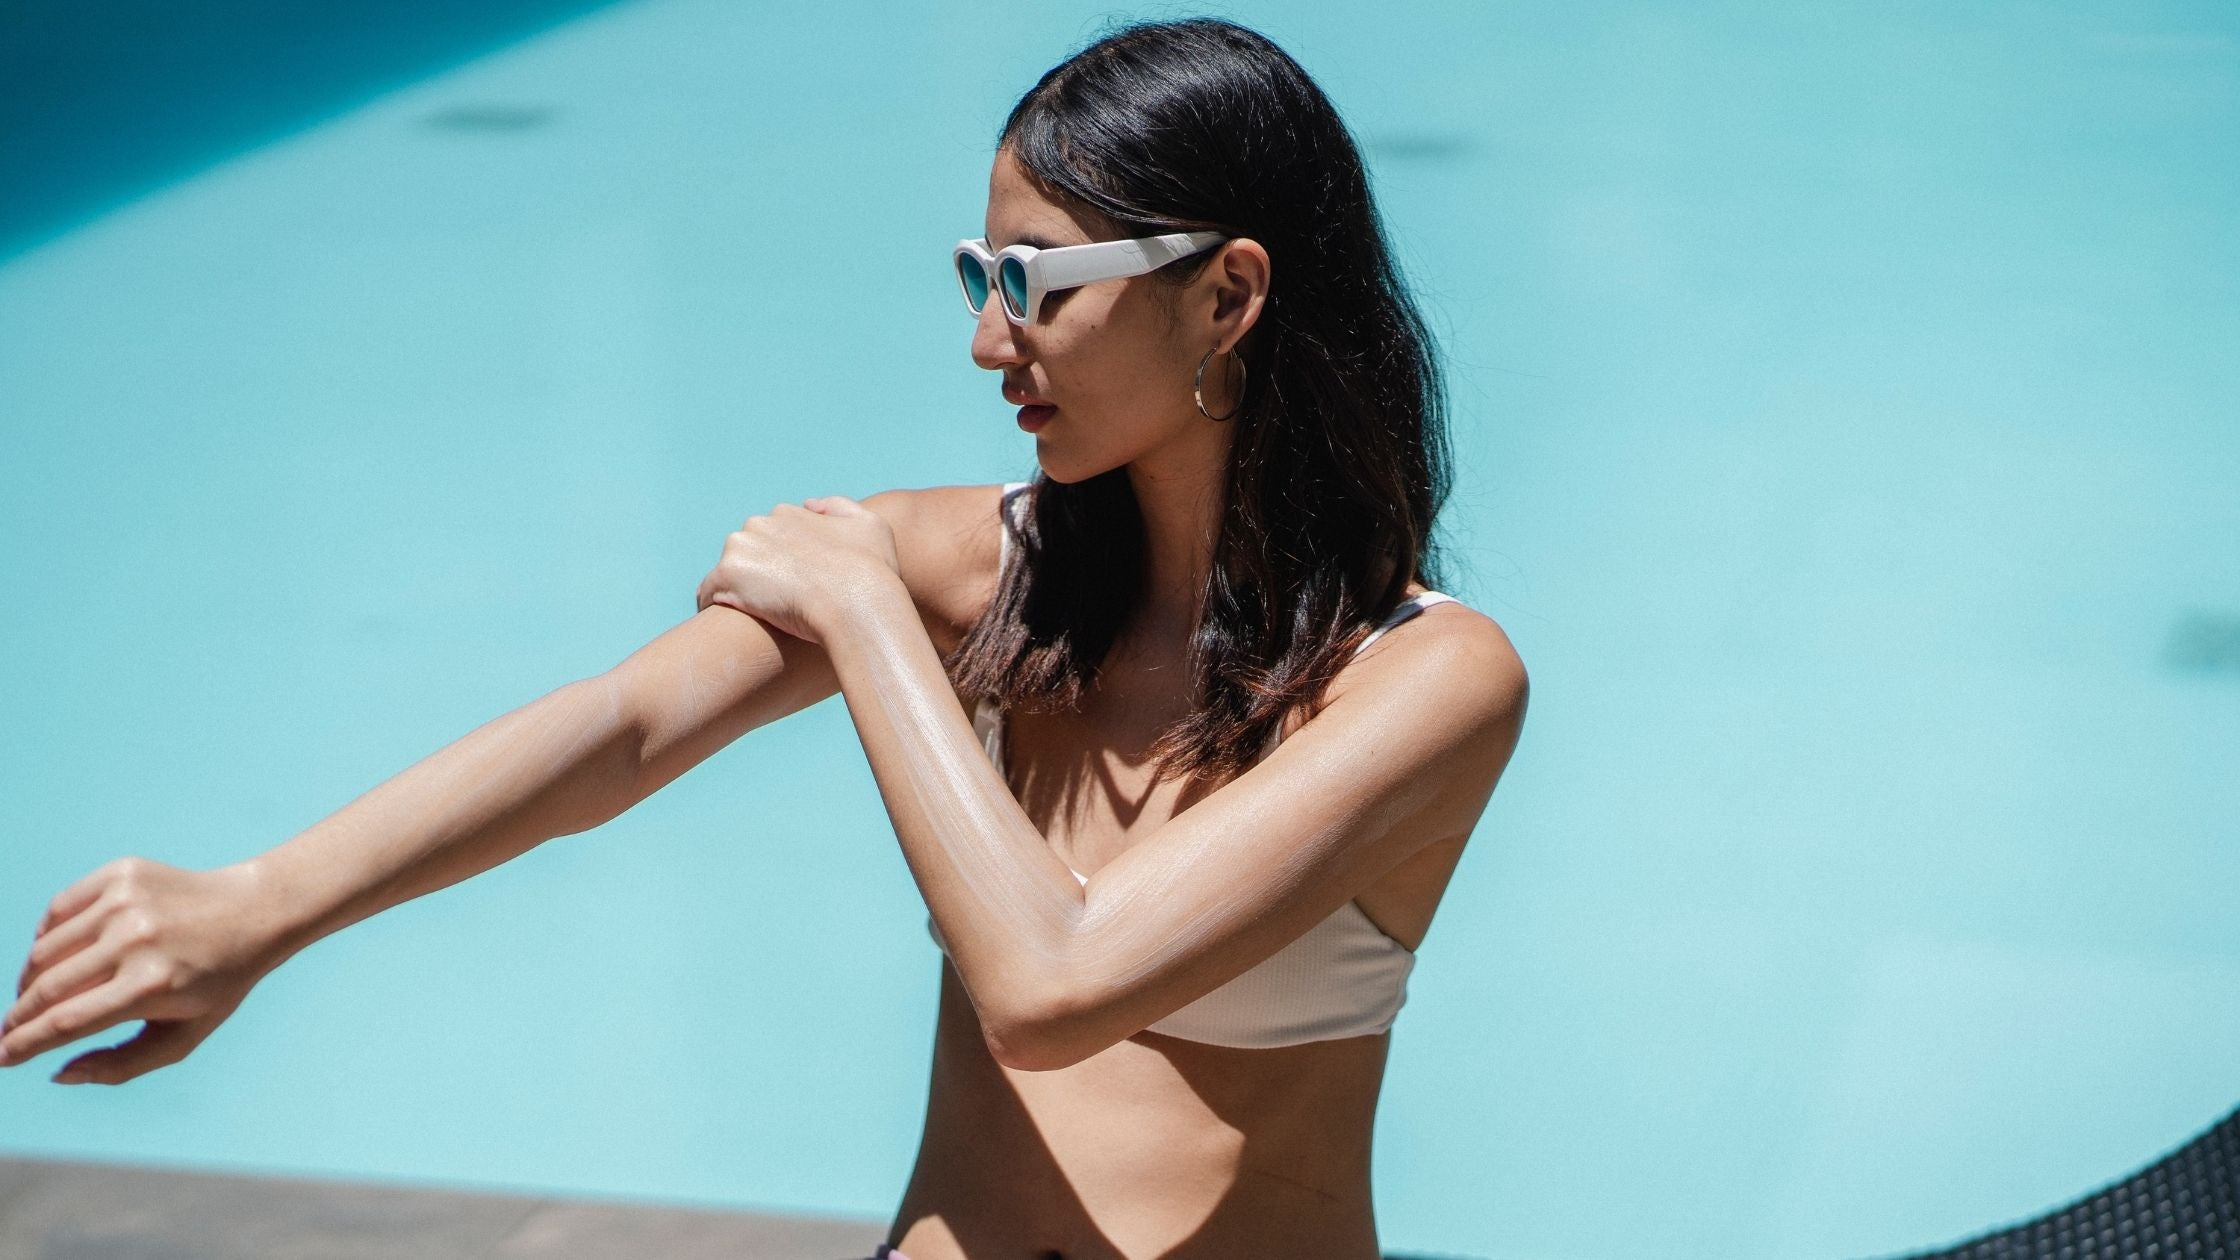 About Physical Sunscreen vs. Chemical Sunscreens